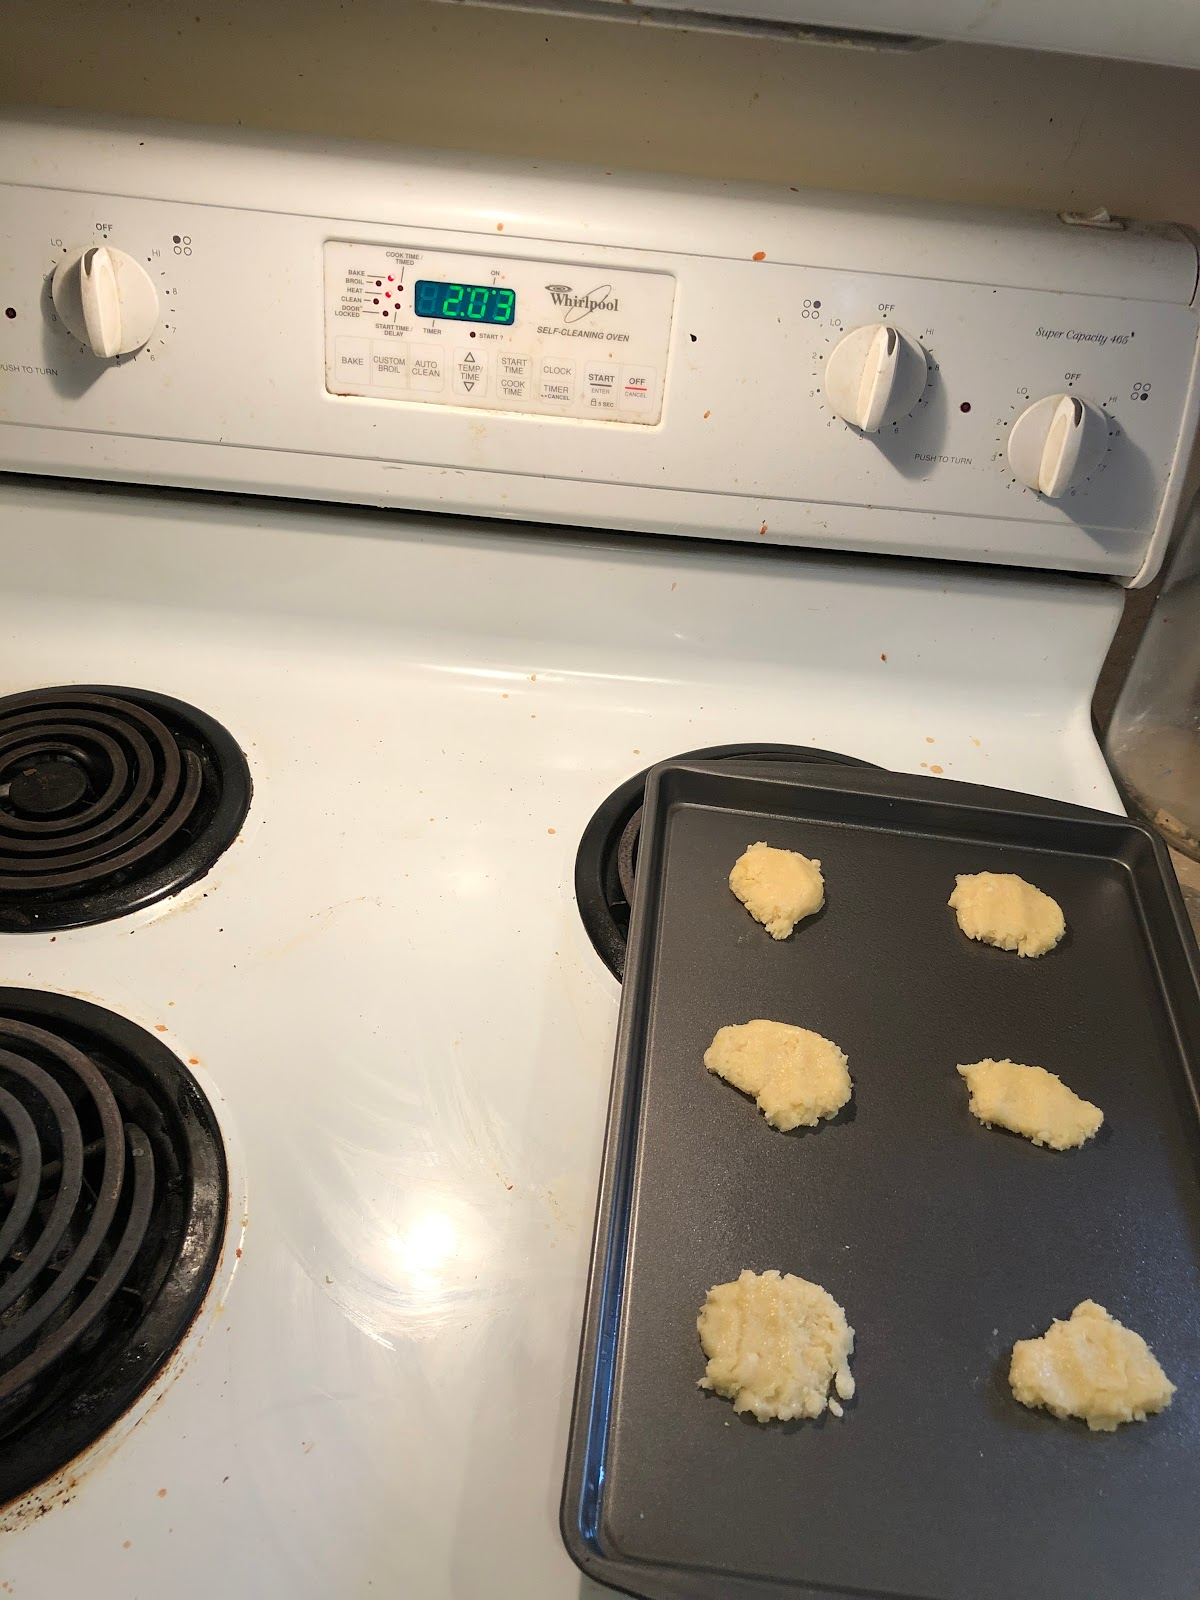 The flattened cookies on a cookie sheet.